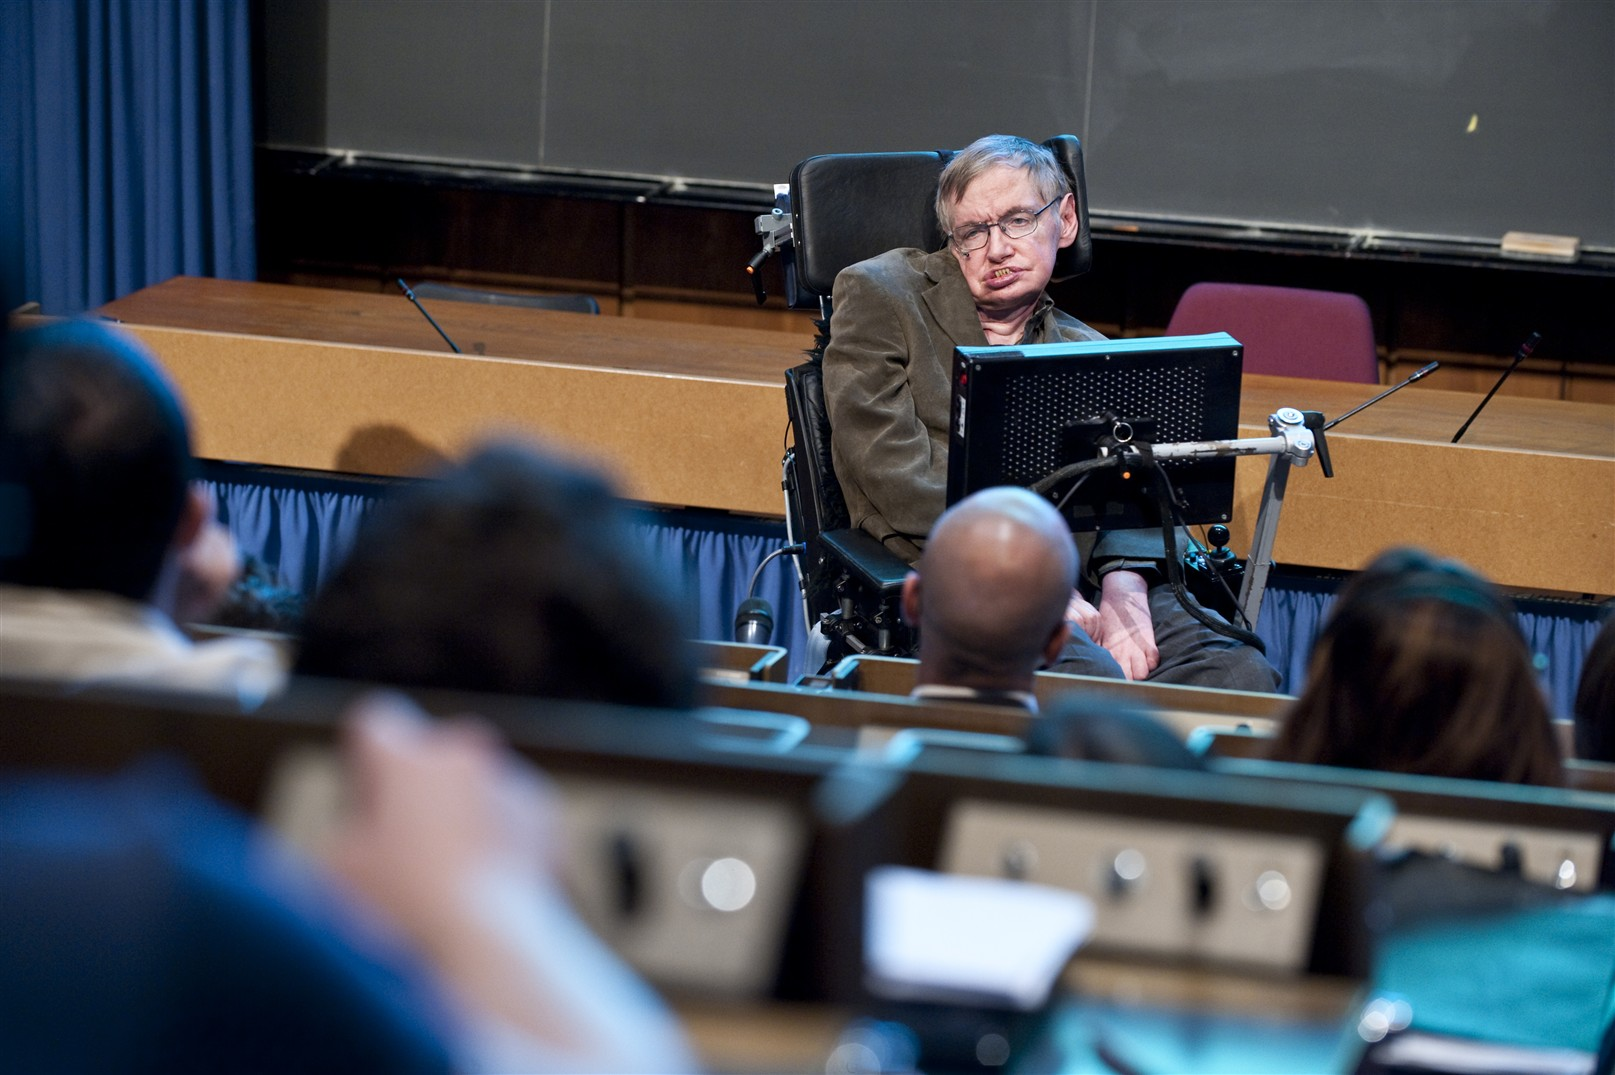 Professor Hawking (University of Cambridge) gives a conference at CERN : The Creation of the Universe.